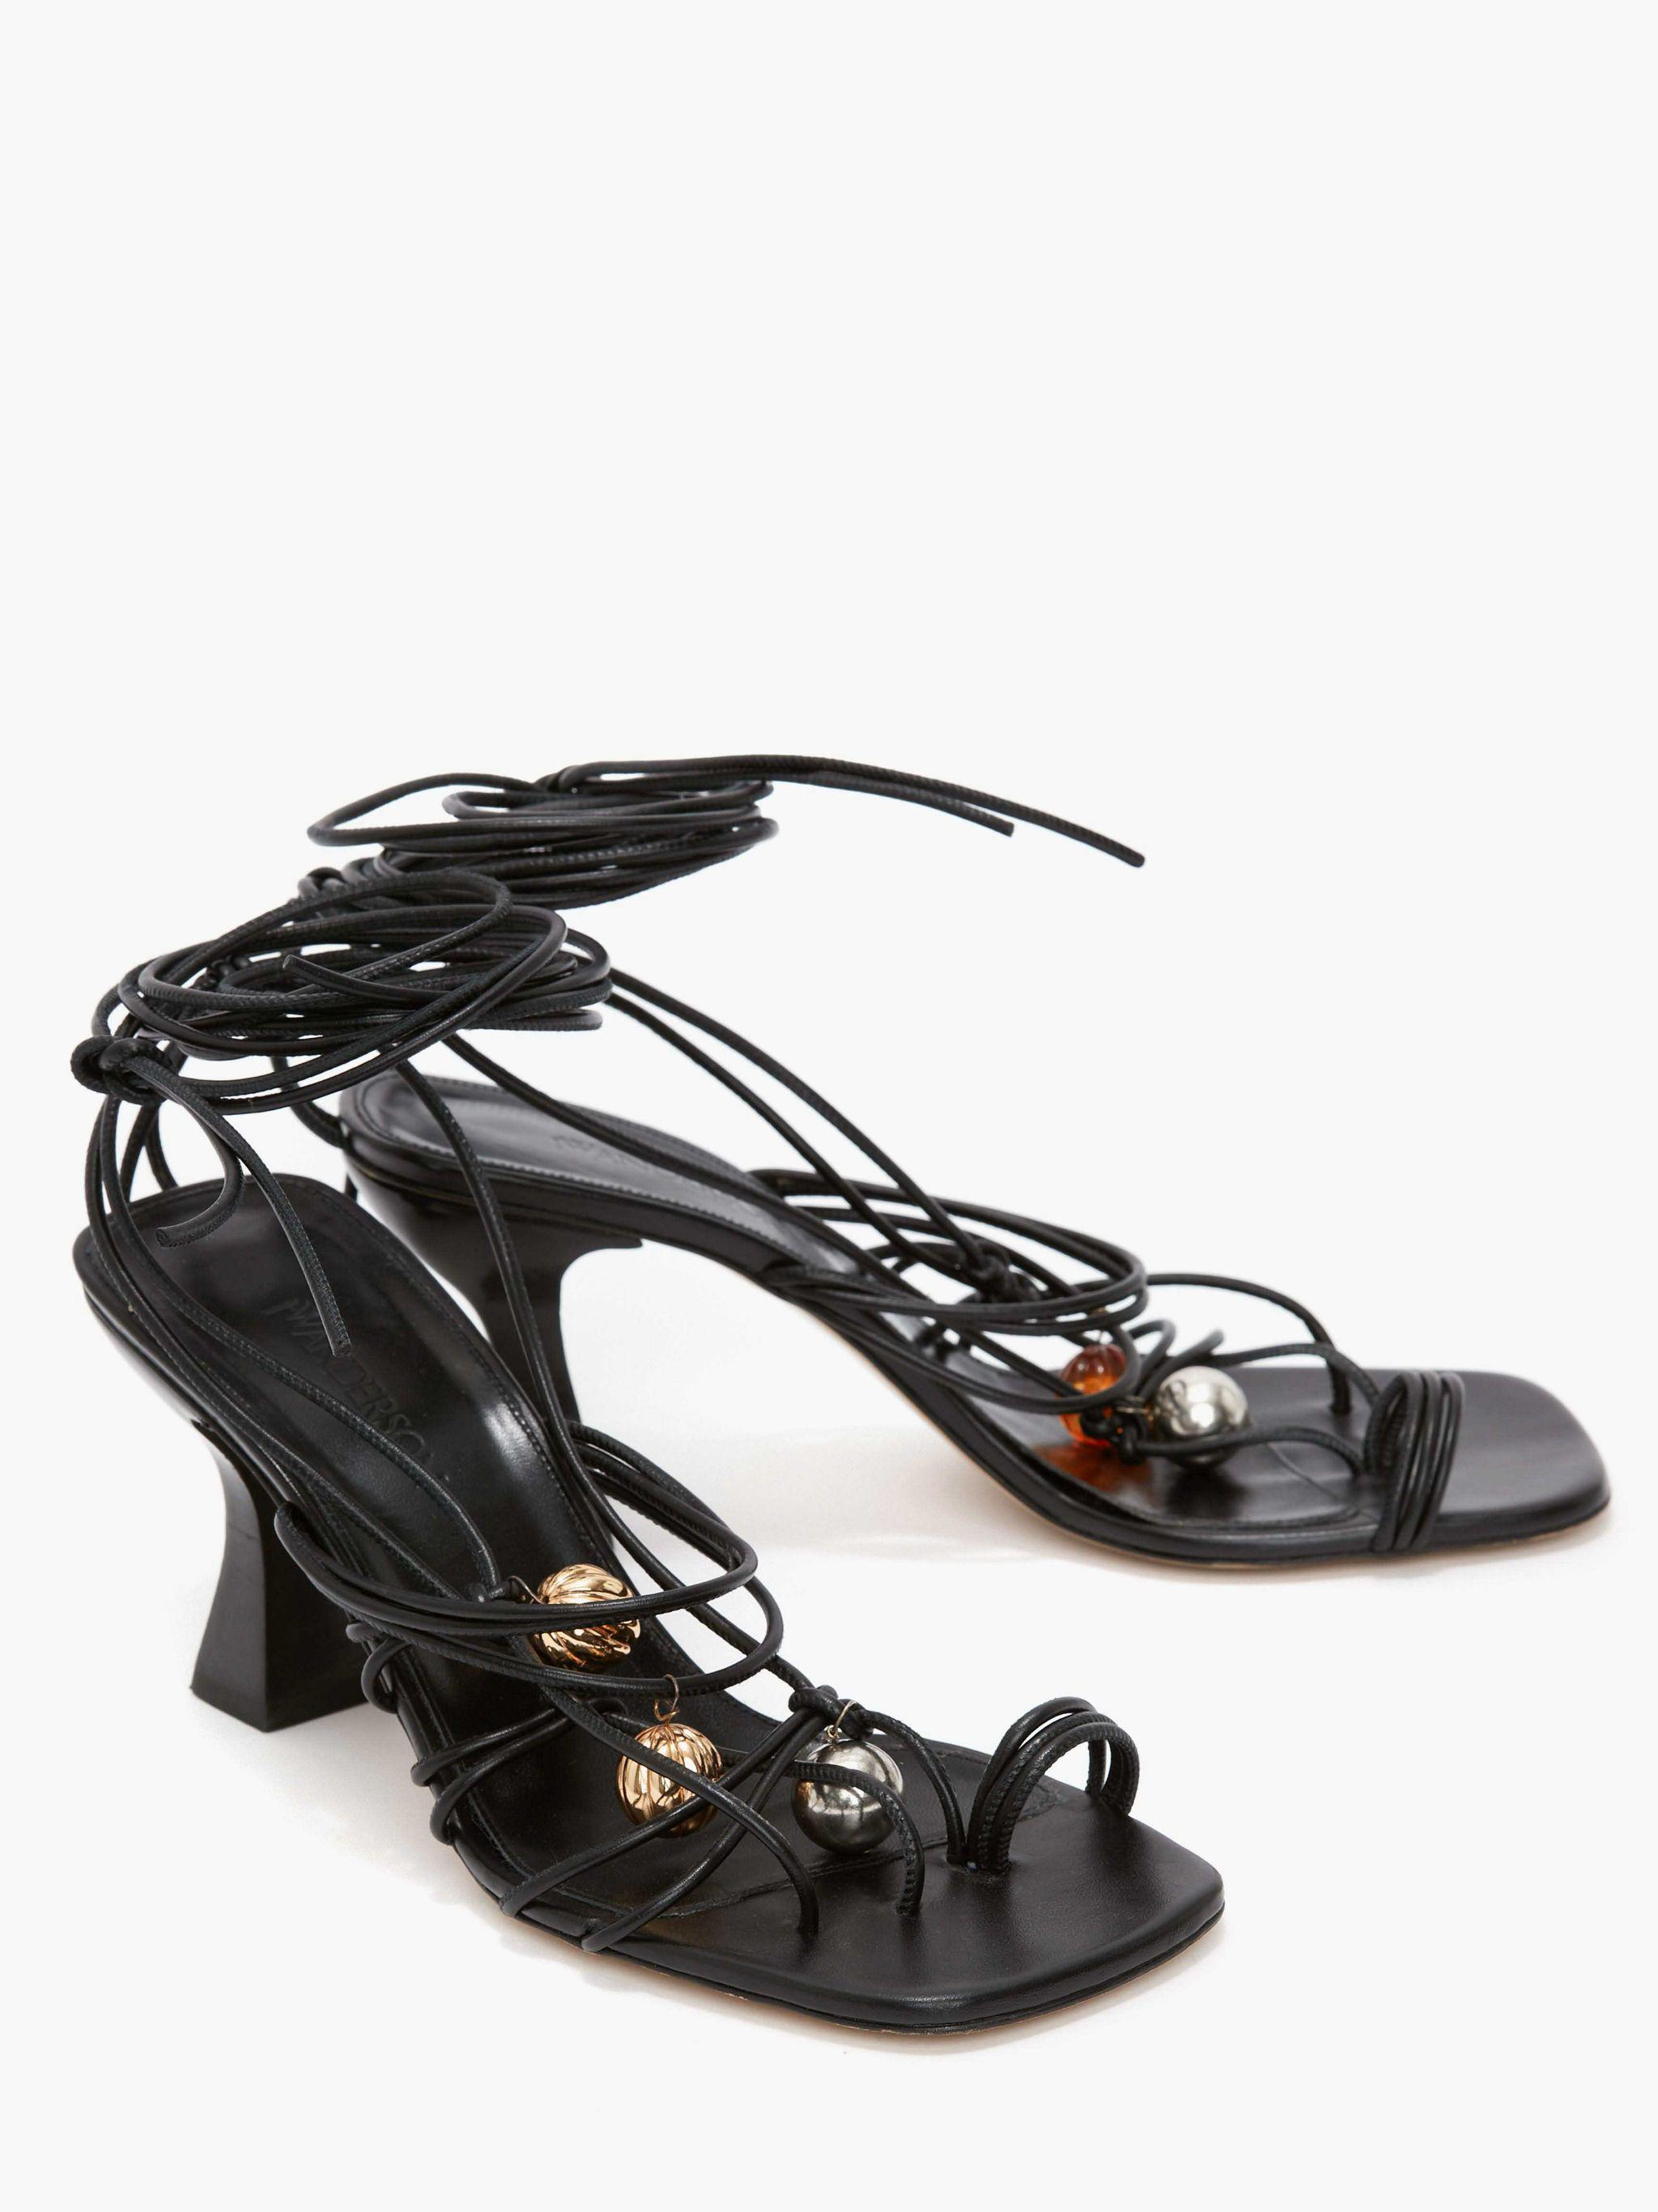 WOMEN'S OPEN LACED HEEL WITH BEADS 1